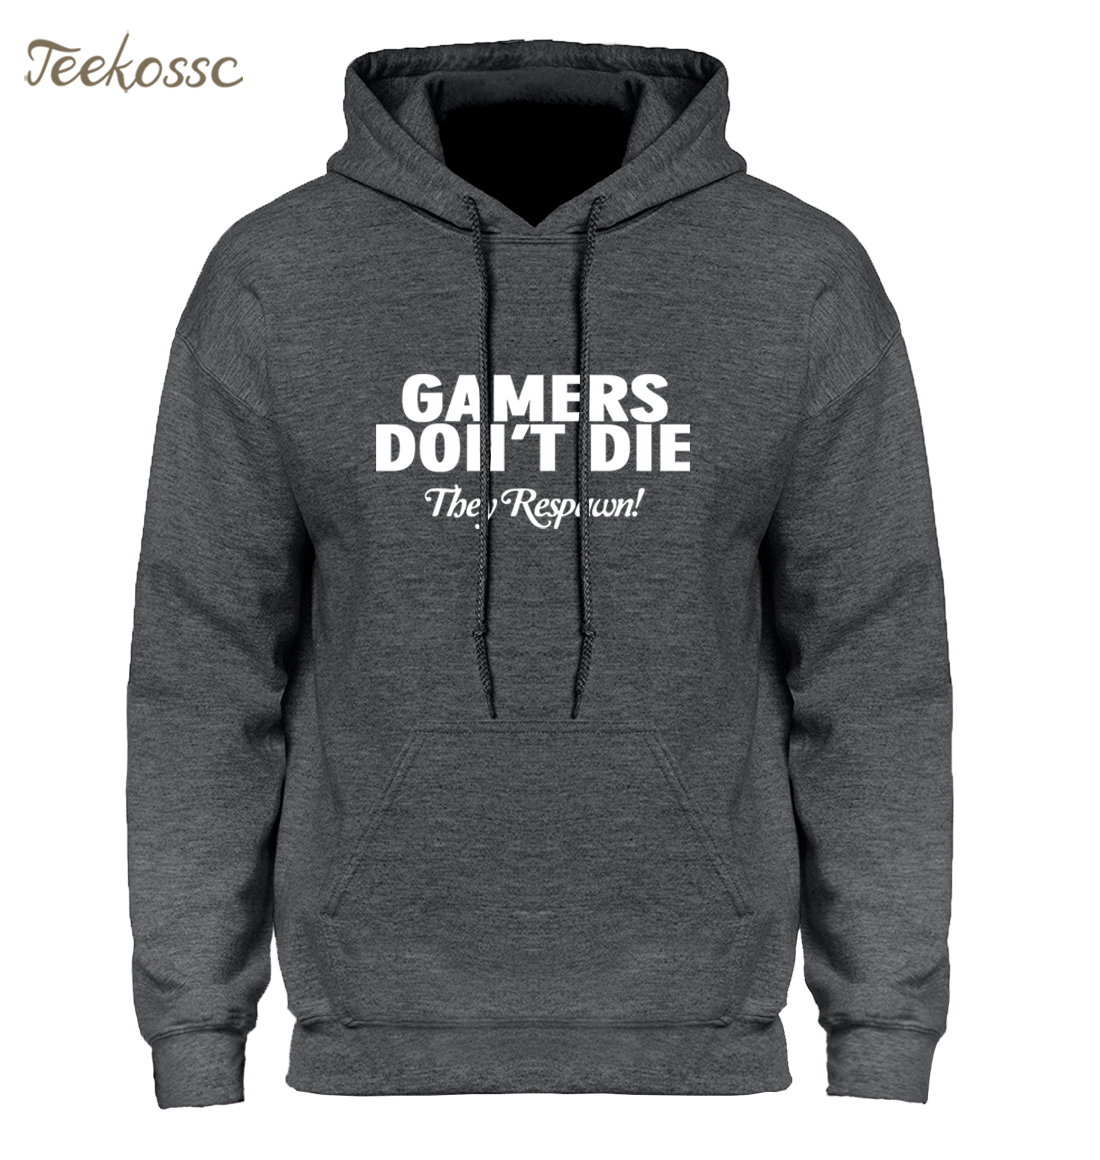 GAMERS DON'T DIE THEY RESPAWN Men Hoodie FUNNY NOVELTY COD PS4 XBOX Hoodies Mens 2018 Winter Autumn Fleece Hooded Sweatshirt XXL